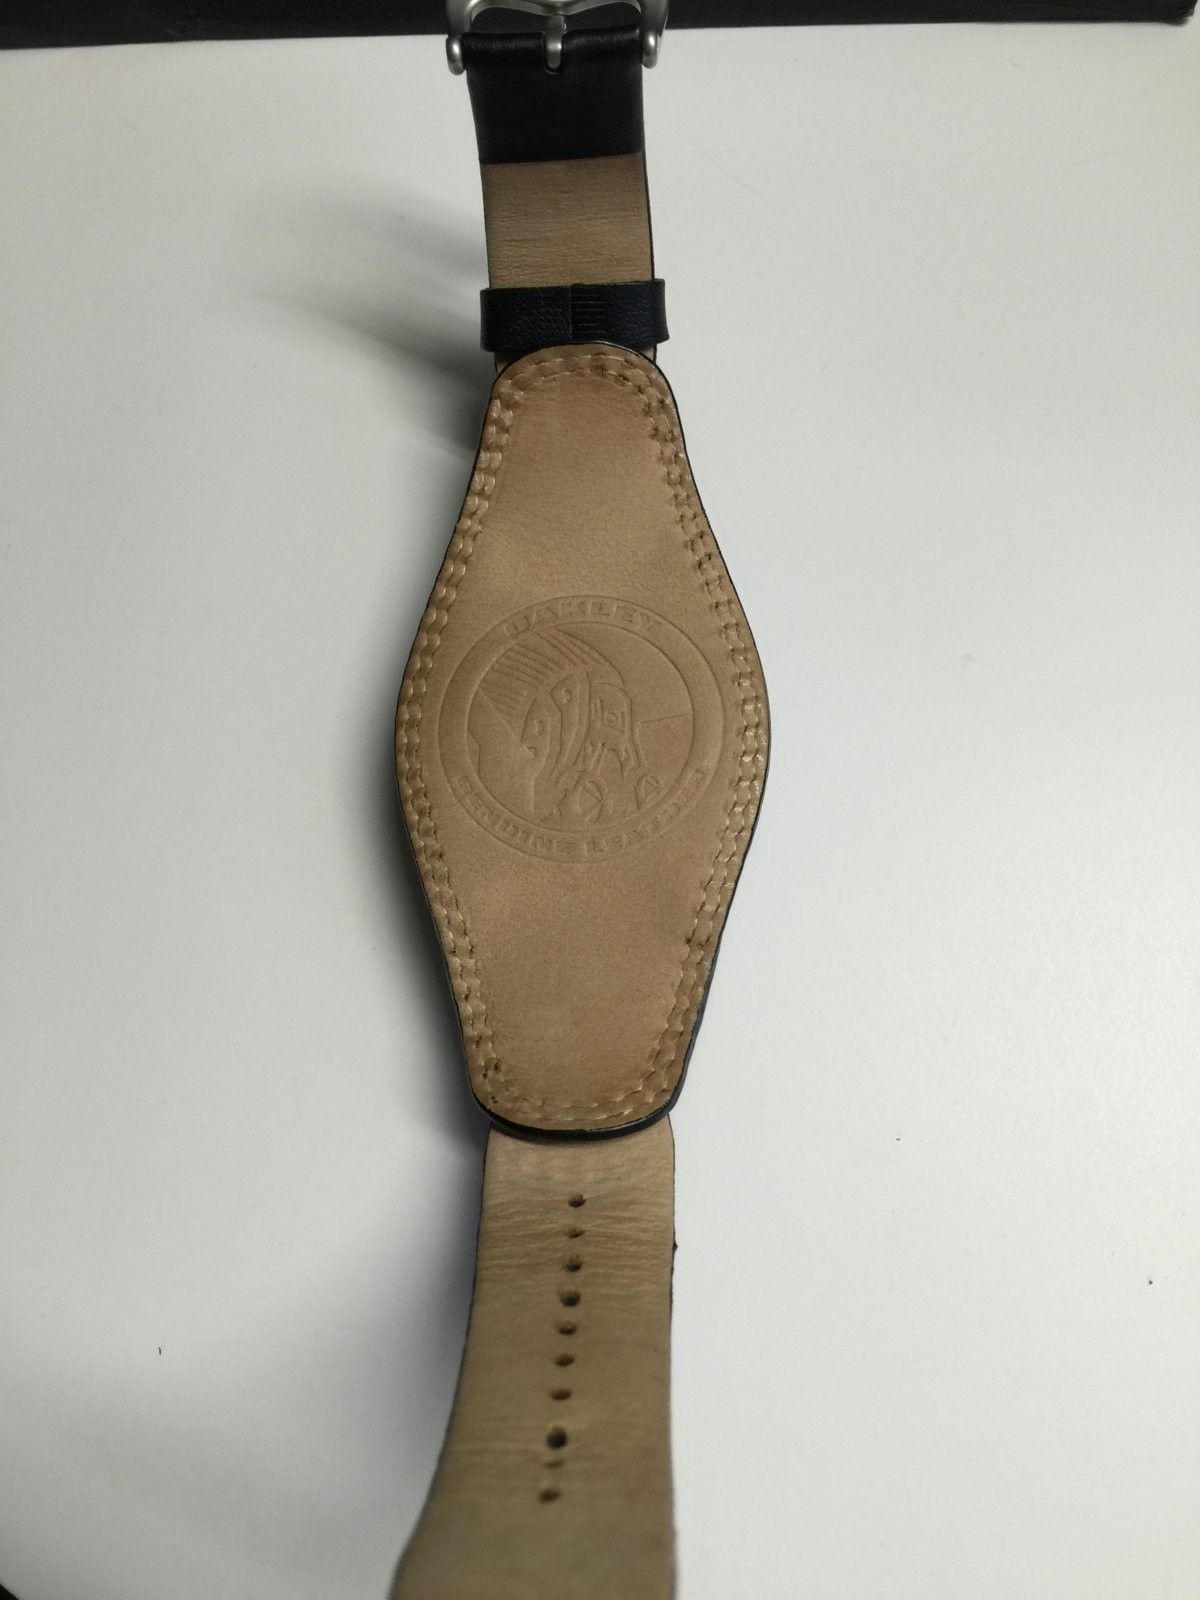 White dial with black leather strap Saddleback watch - IMG_4016.JPG